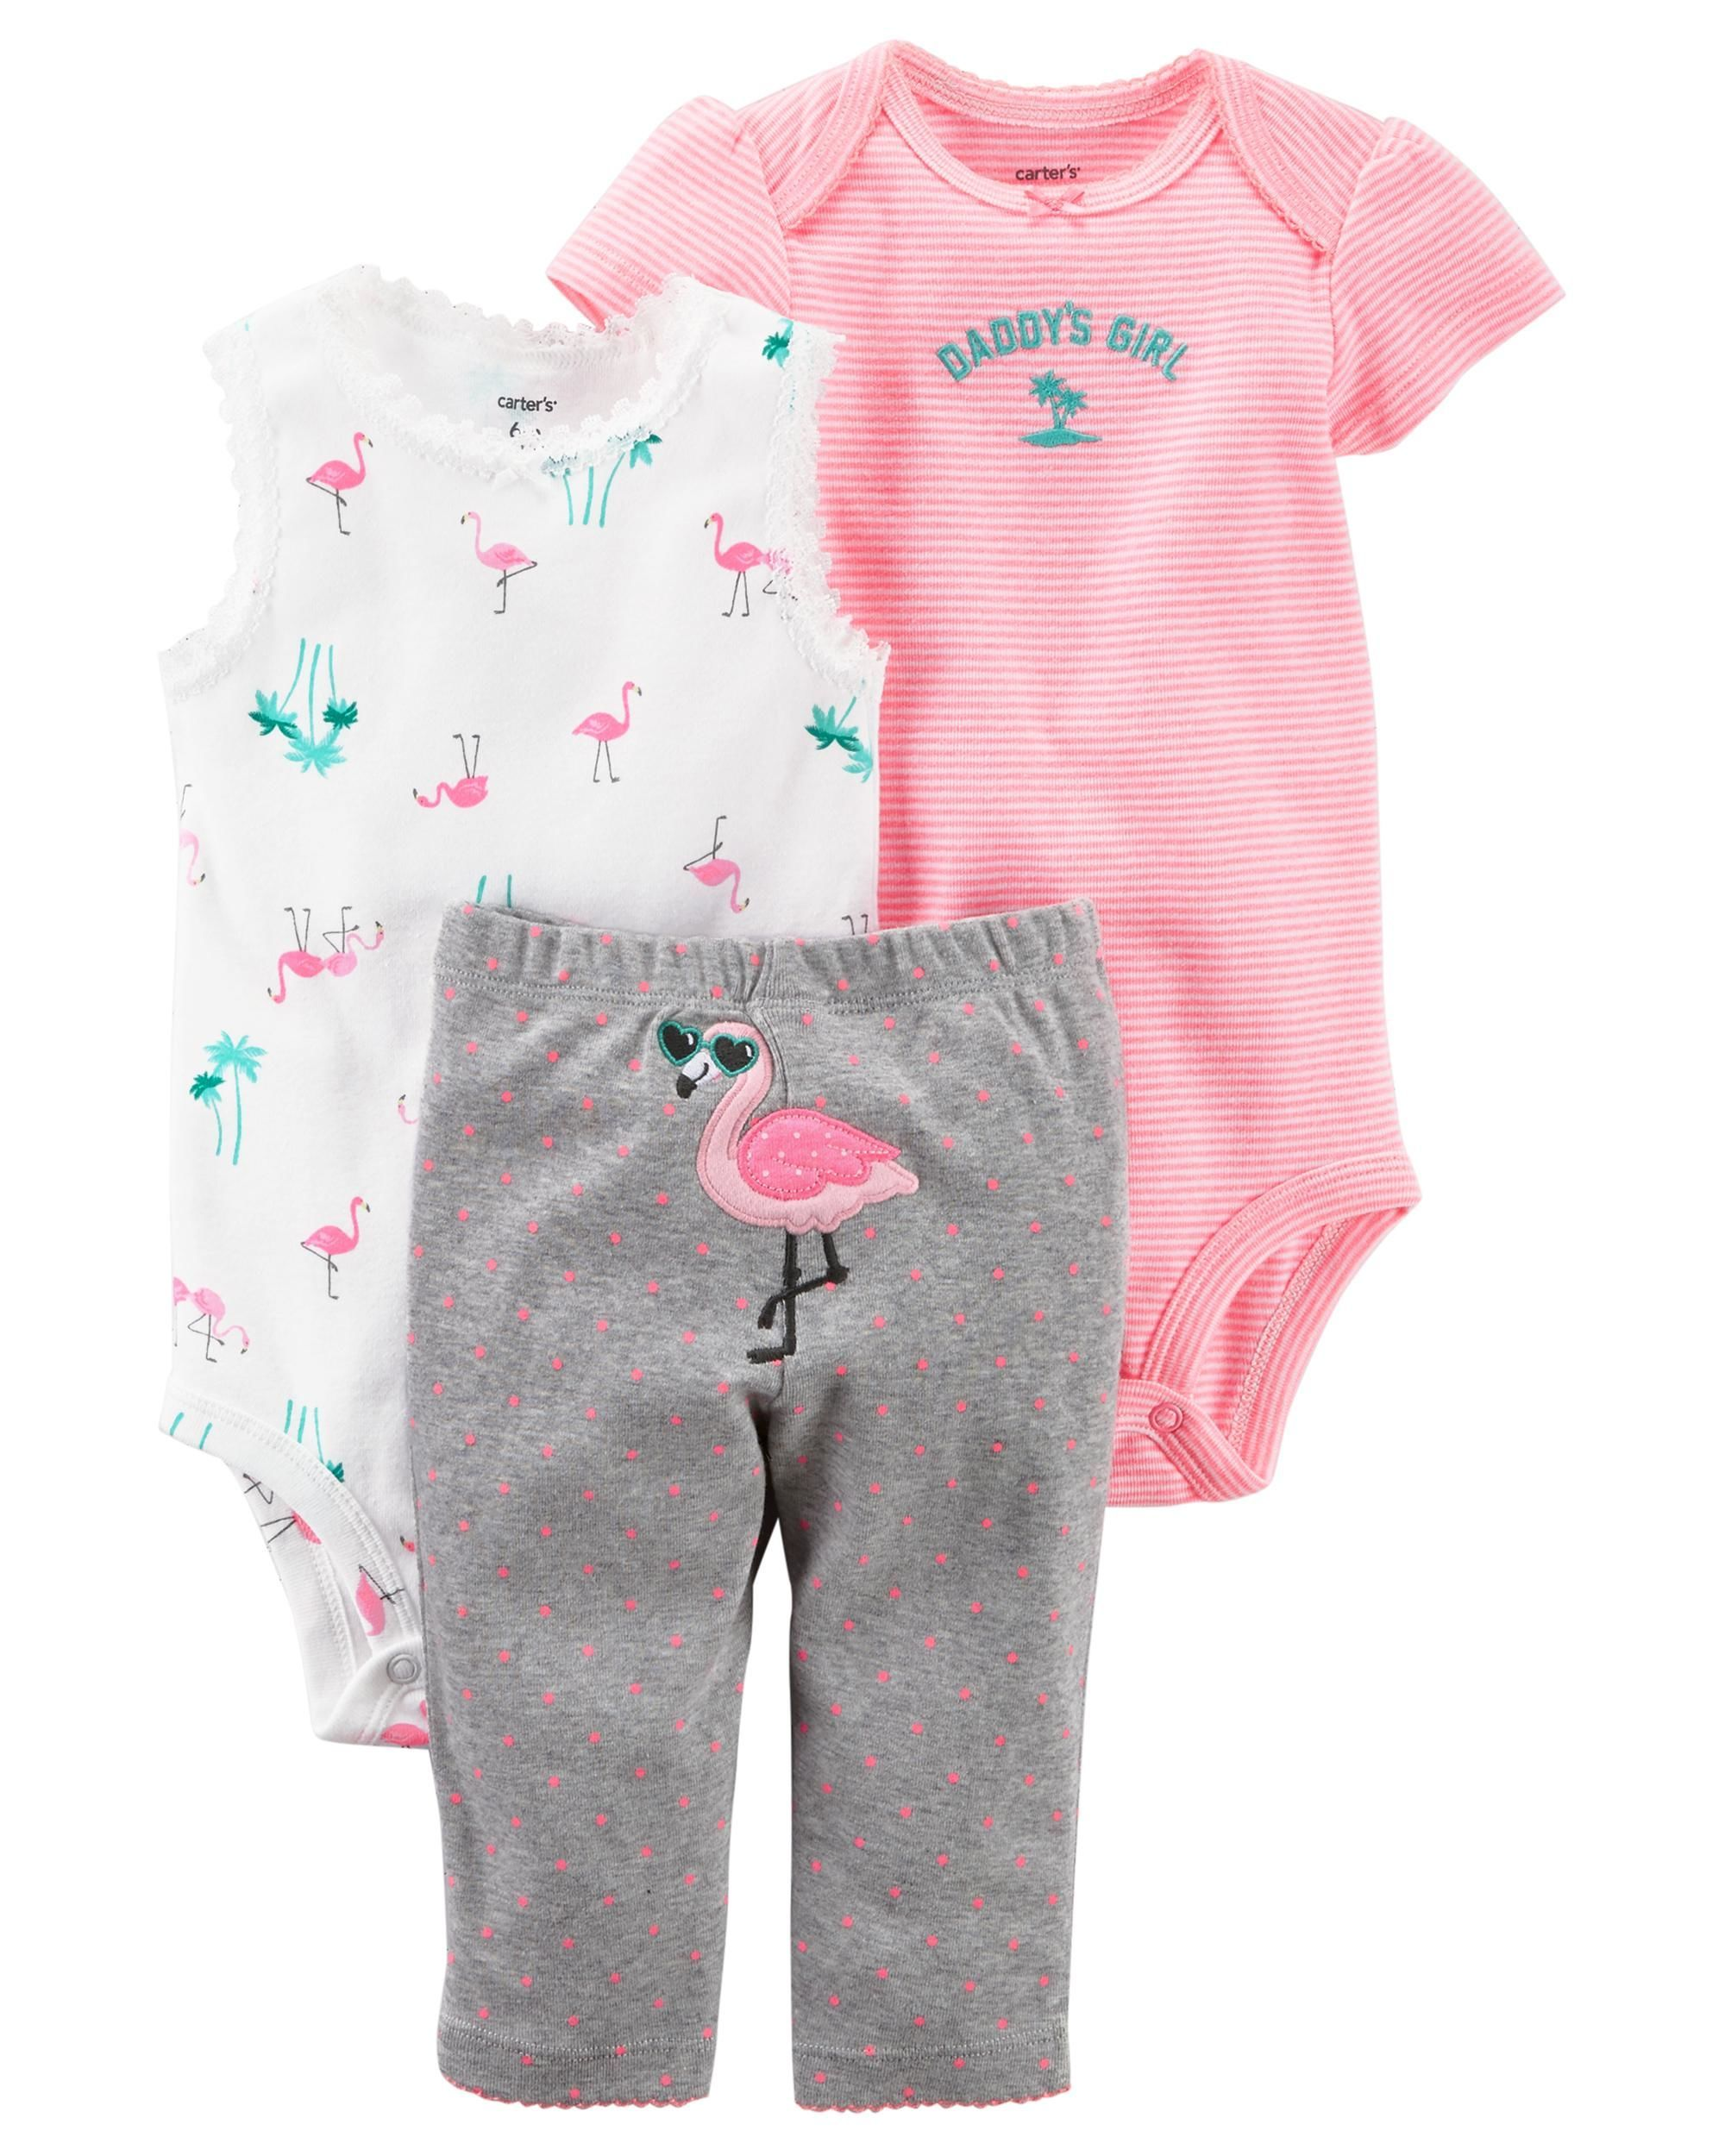 6e5ee502d Carter's 3-Piece Little Character Set, Daddy's Girl